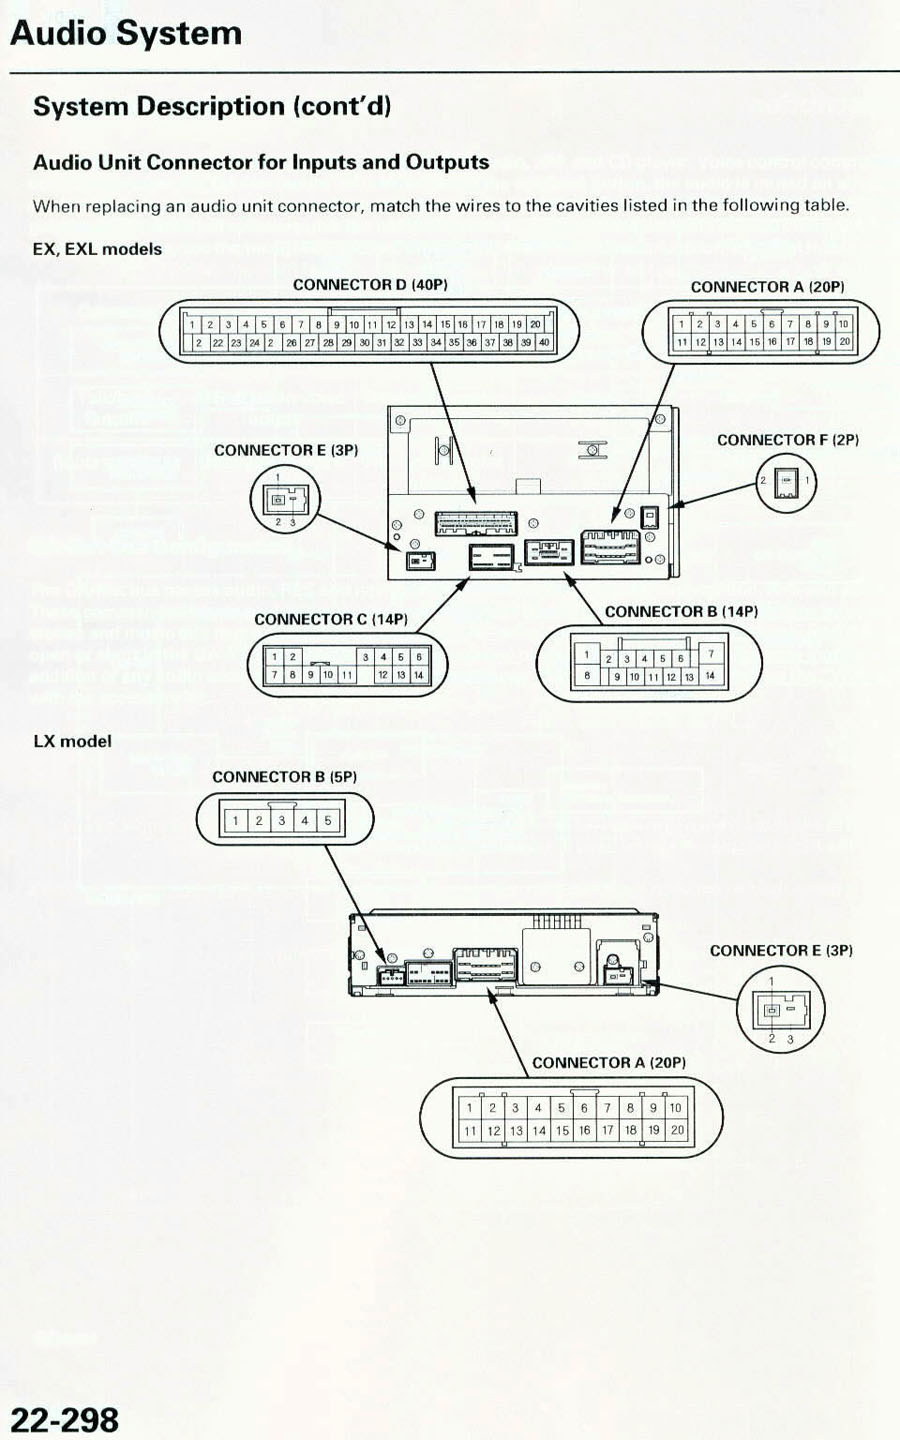 2008 Honda Civic Radio Wiring Harness Diagram Master Blogs 32100s02a40 2007 Pilot Library Rh 79 Bloxhuette De Lx